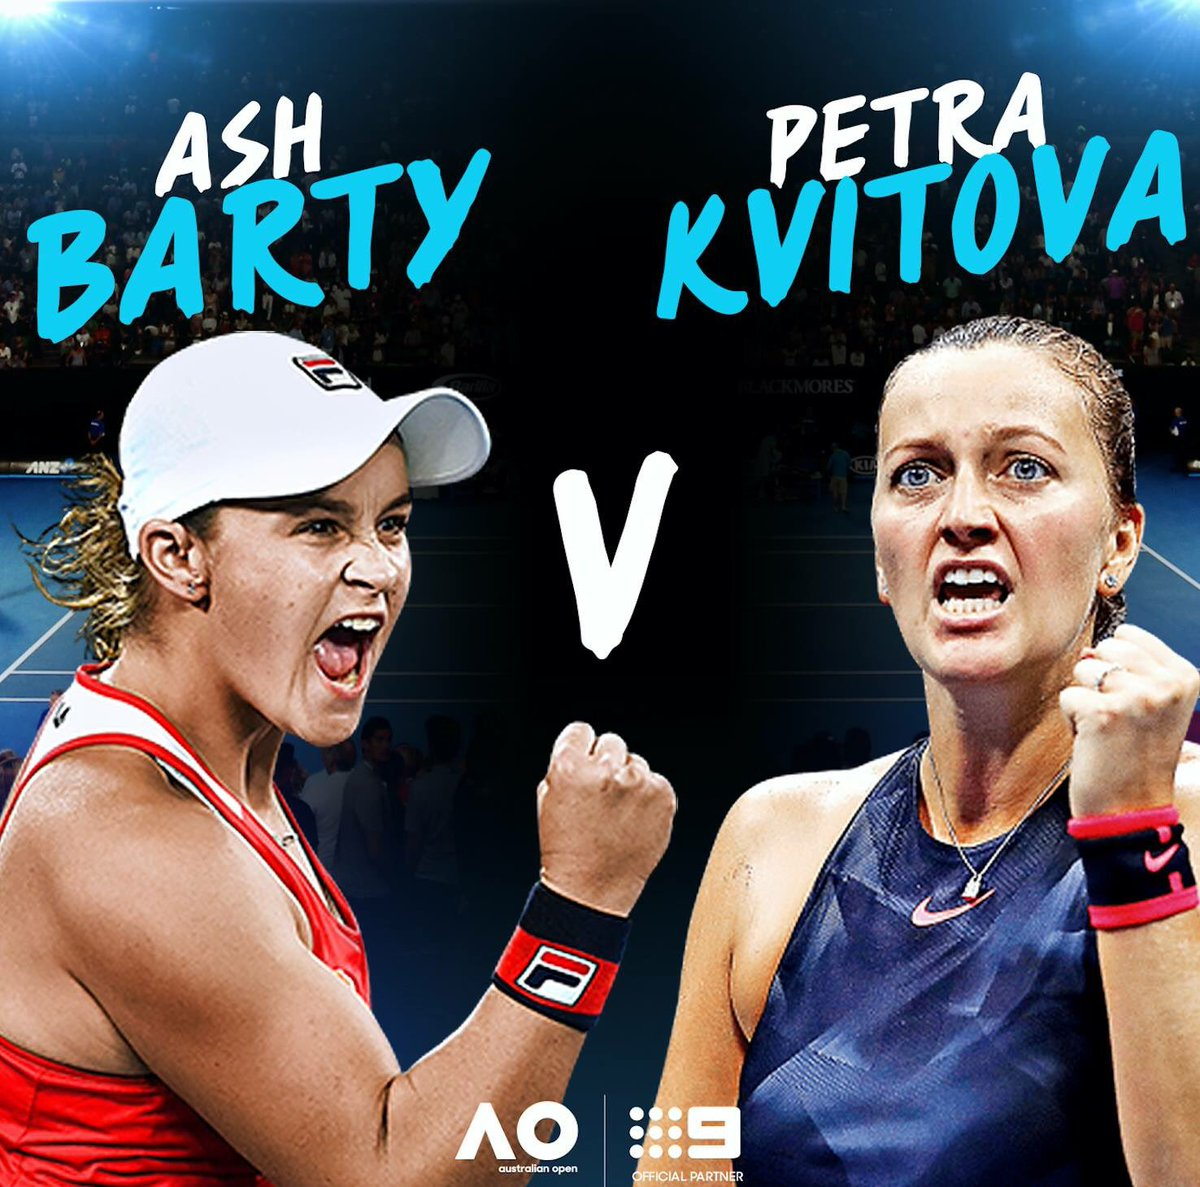 TOMORROW 7.00pm: Invite your mates, the #BartyParty is set to be MASSIVE! 🎉 #AusOpen #9WWOS